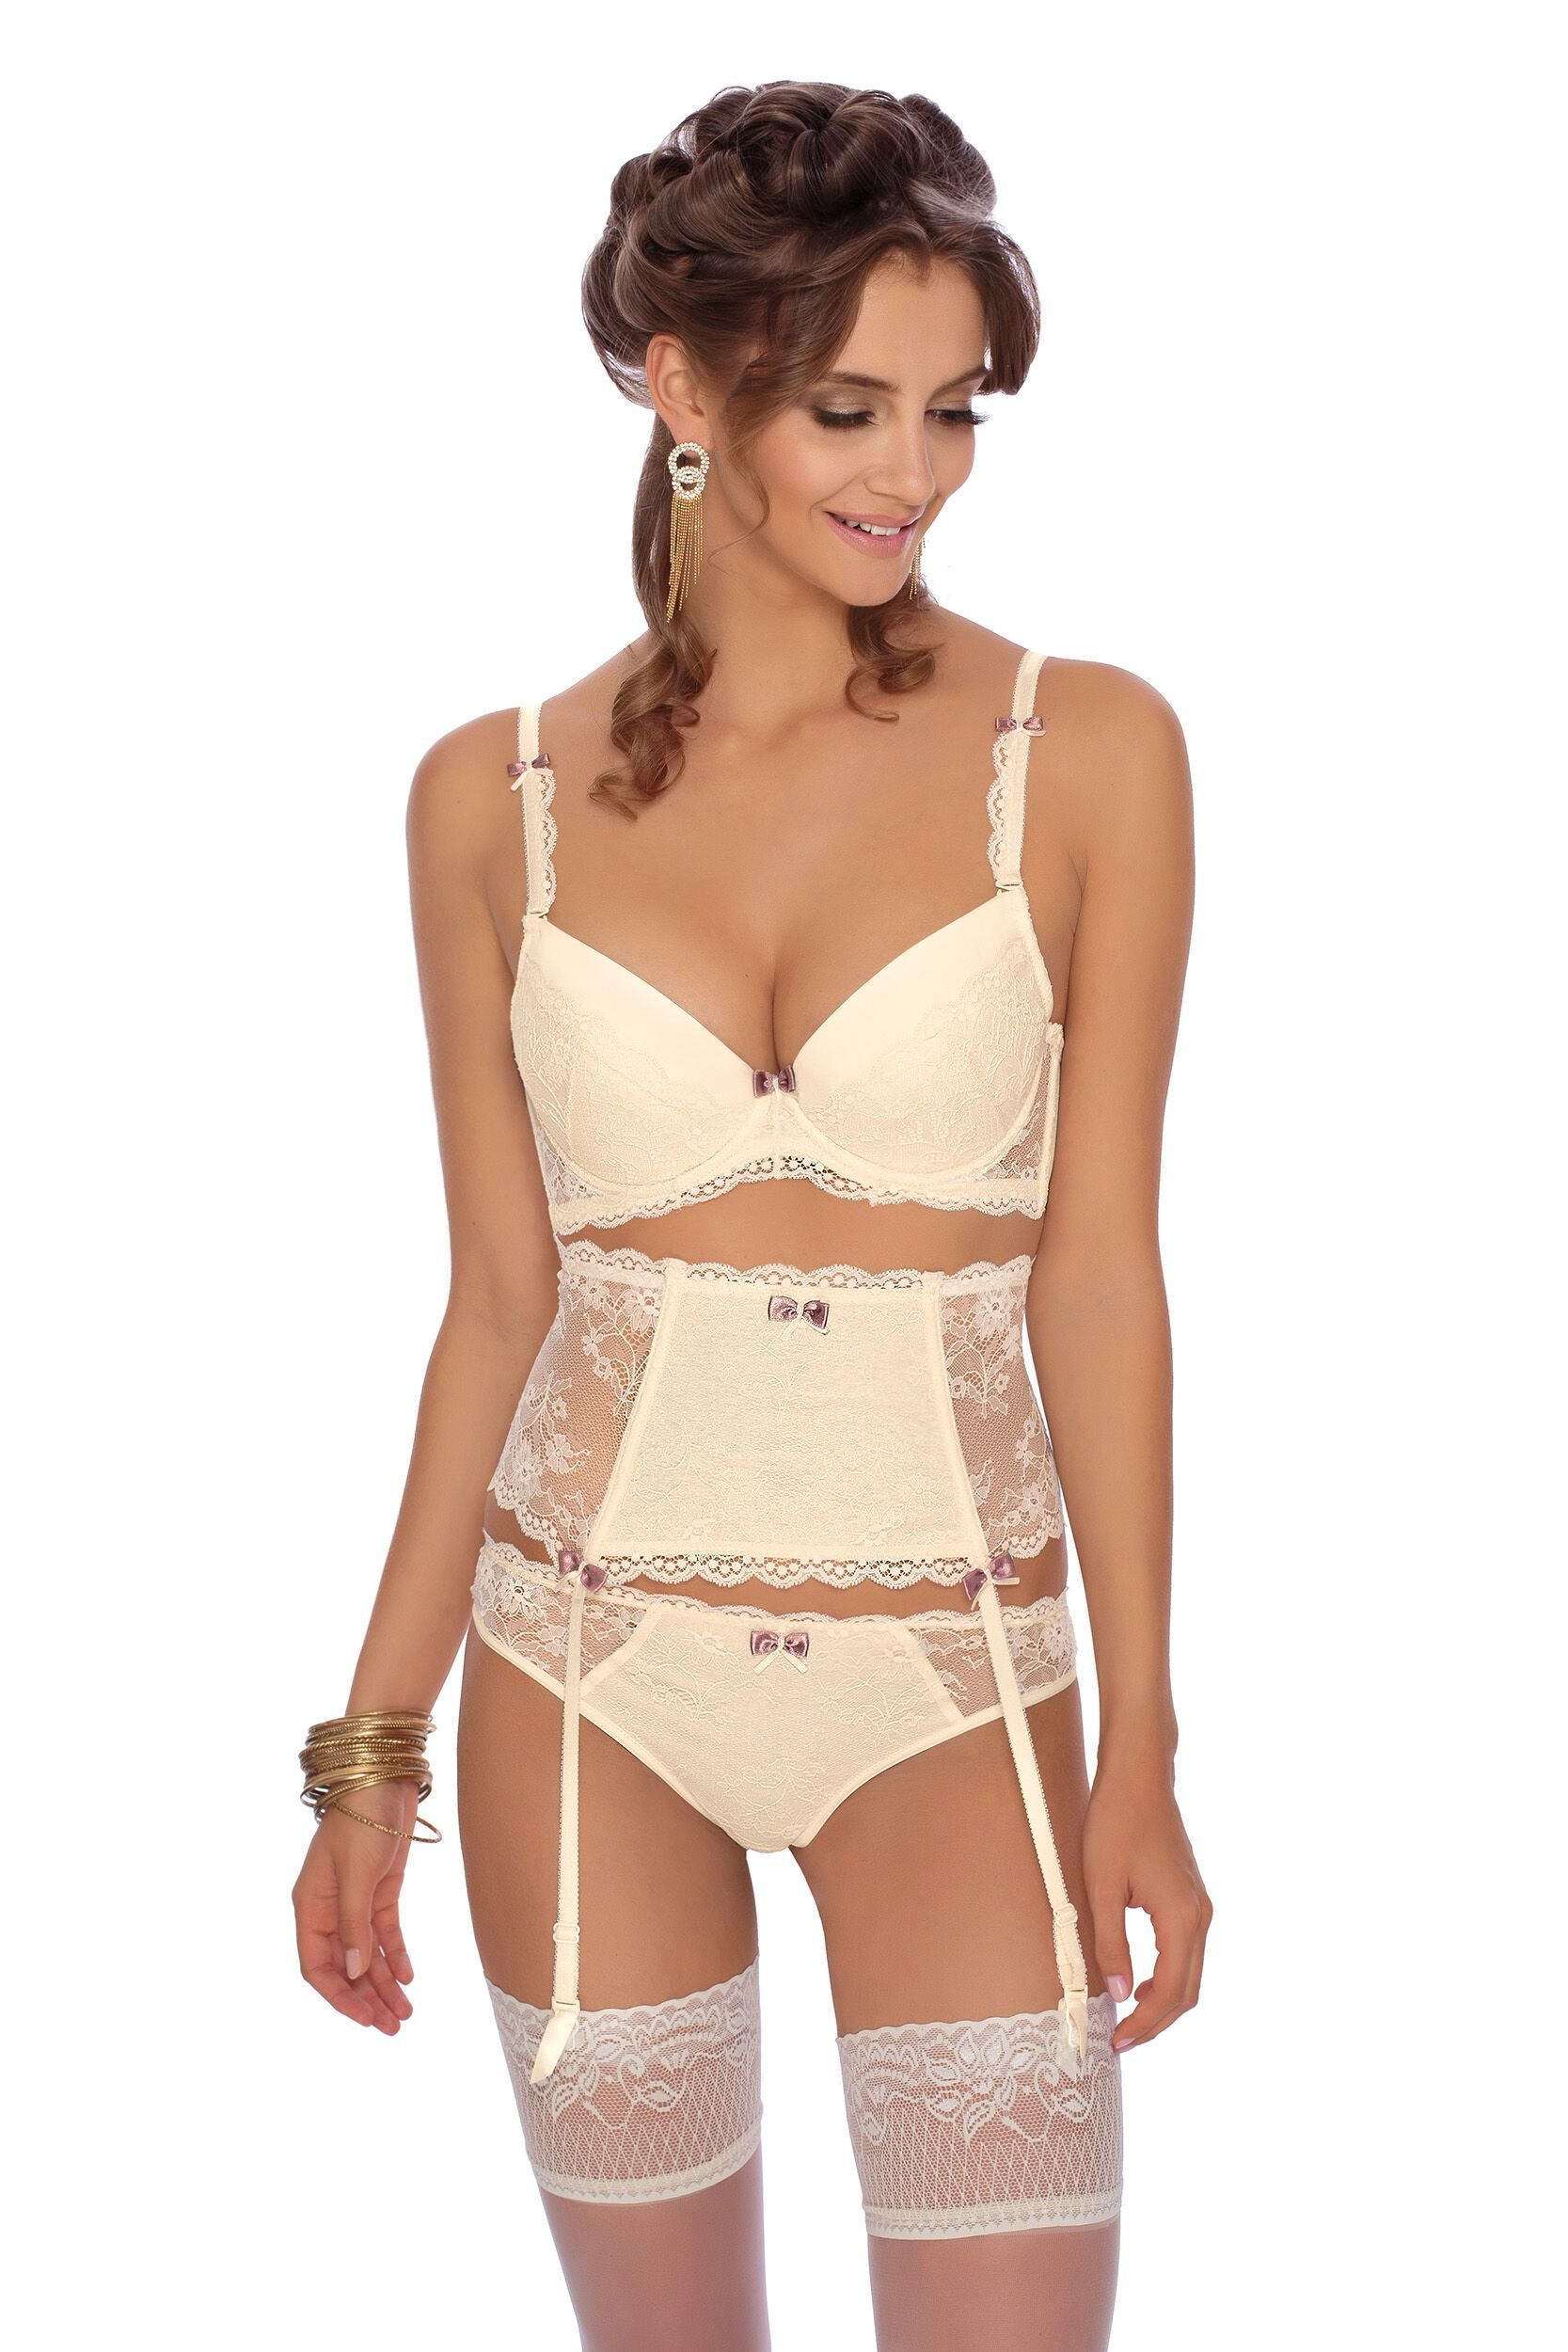 84d8a245167 Roza Fifi Suspender Belt (Ivory) - Suspender Belts - Roza - Charm and Lace